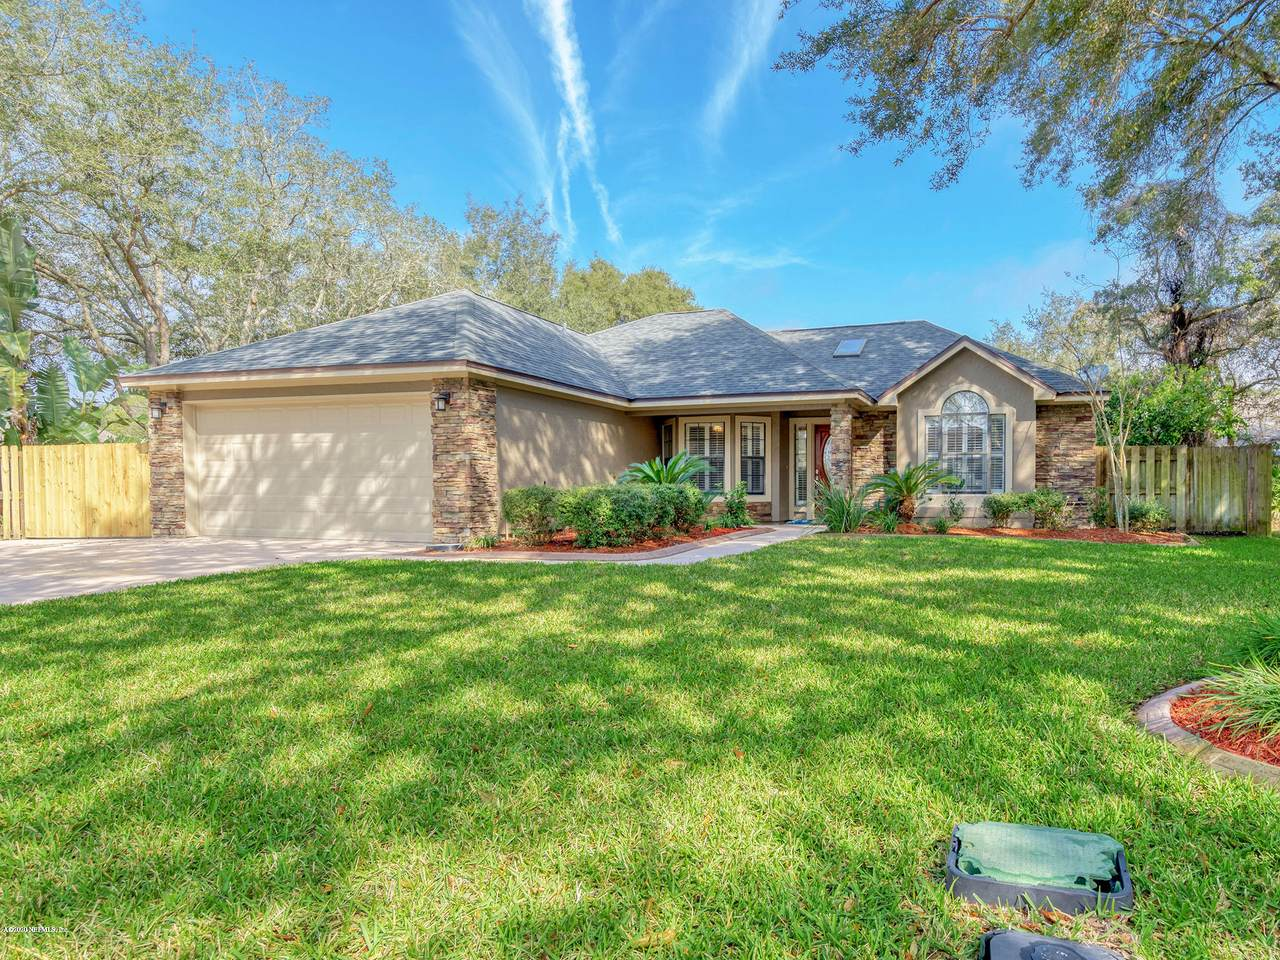 2105 Purcell Dr - Photo 1